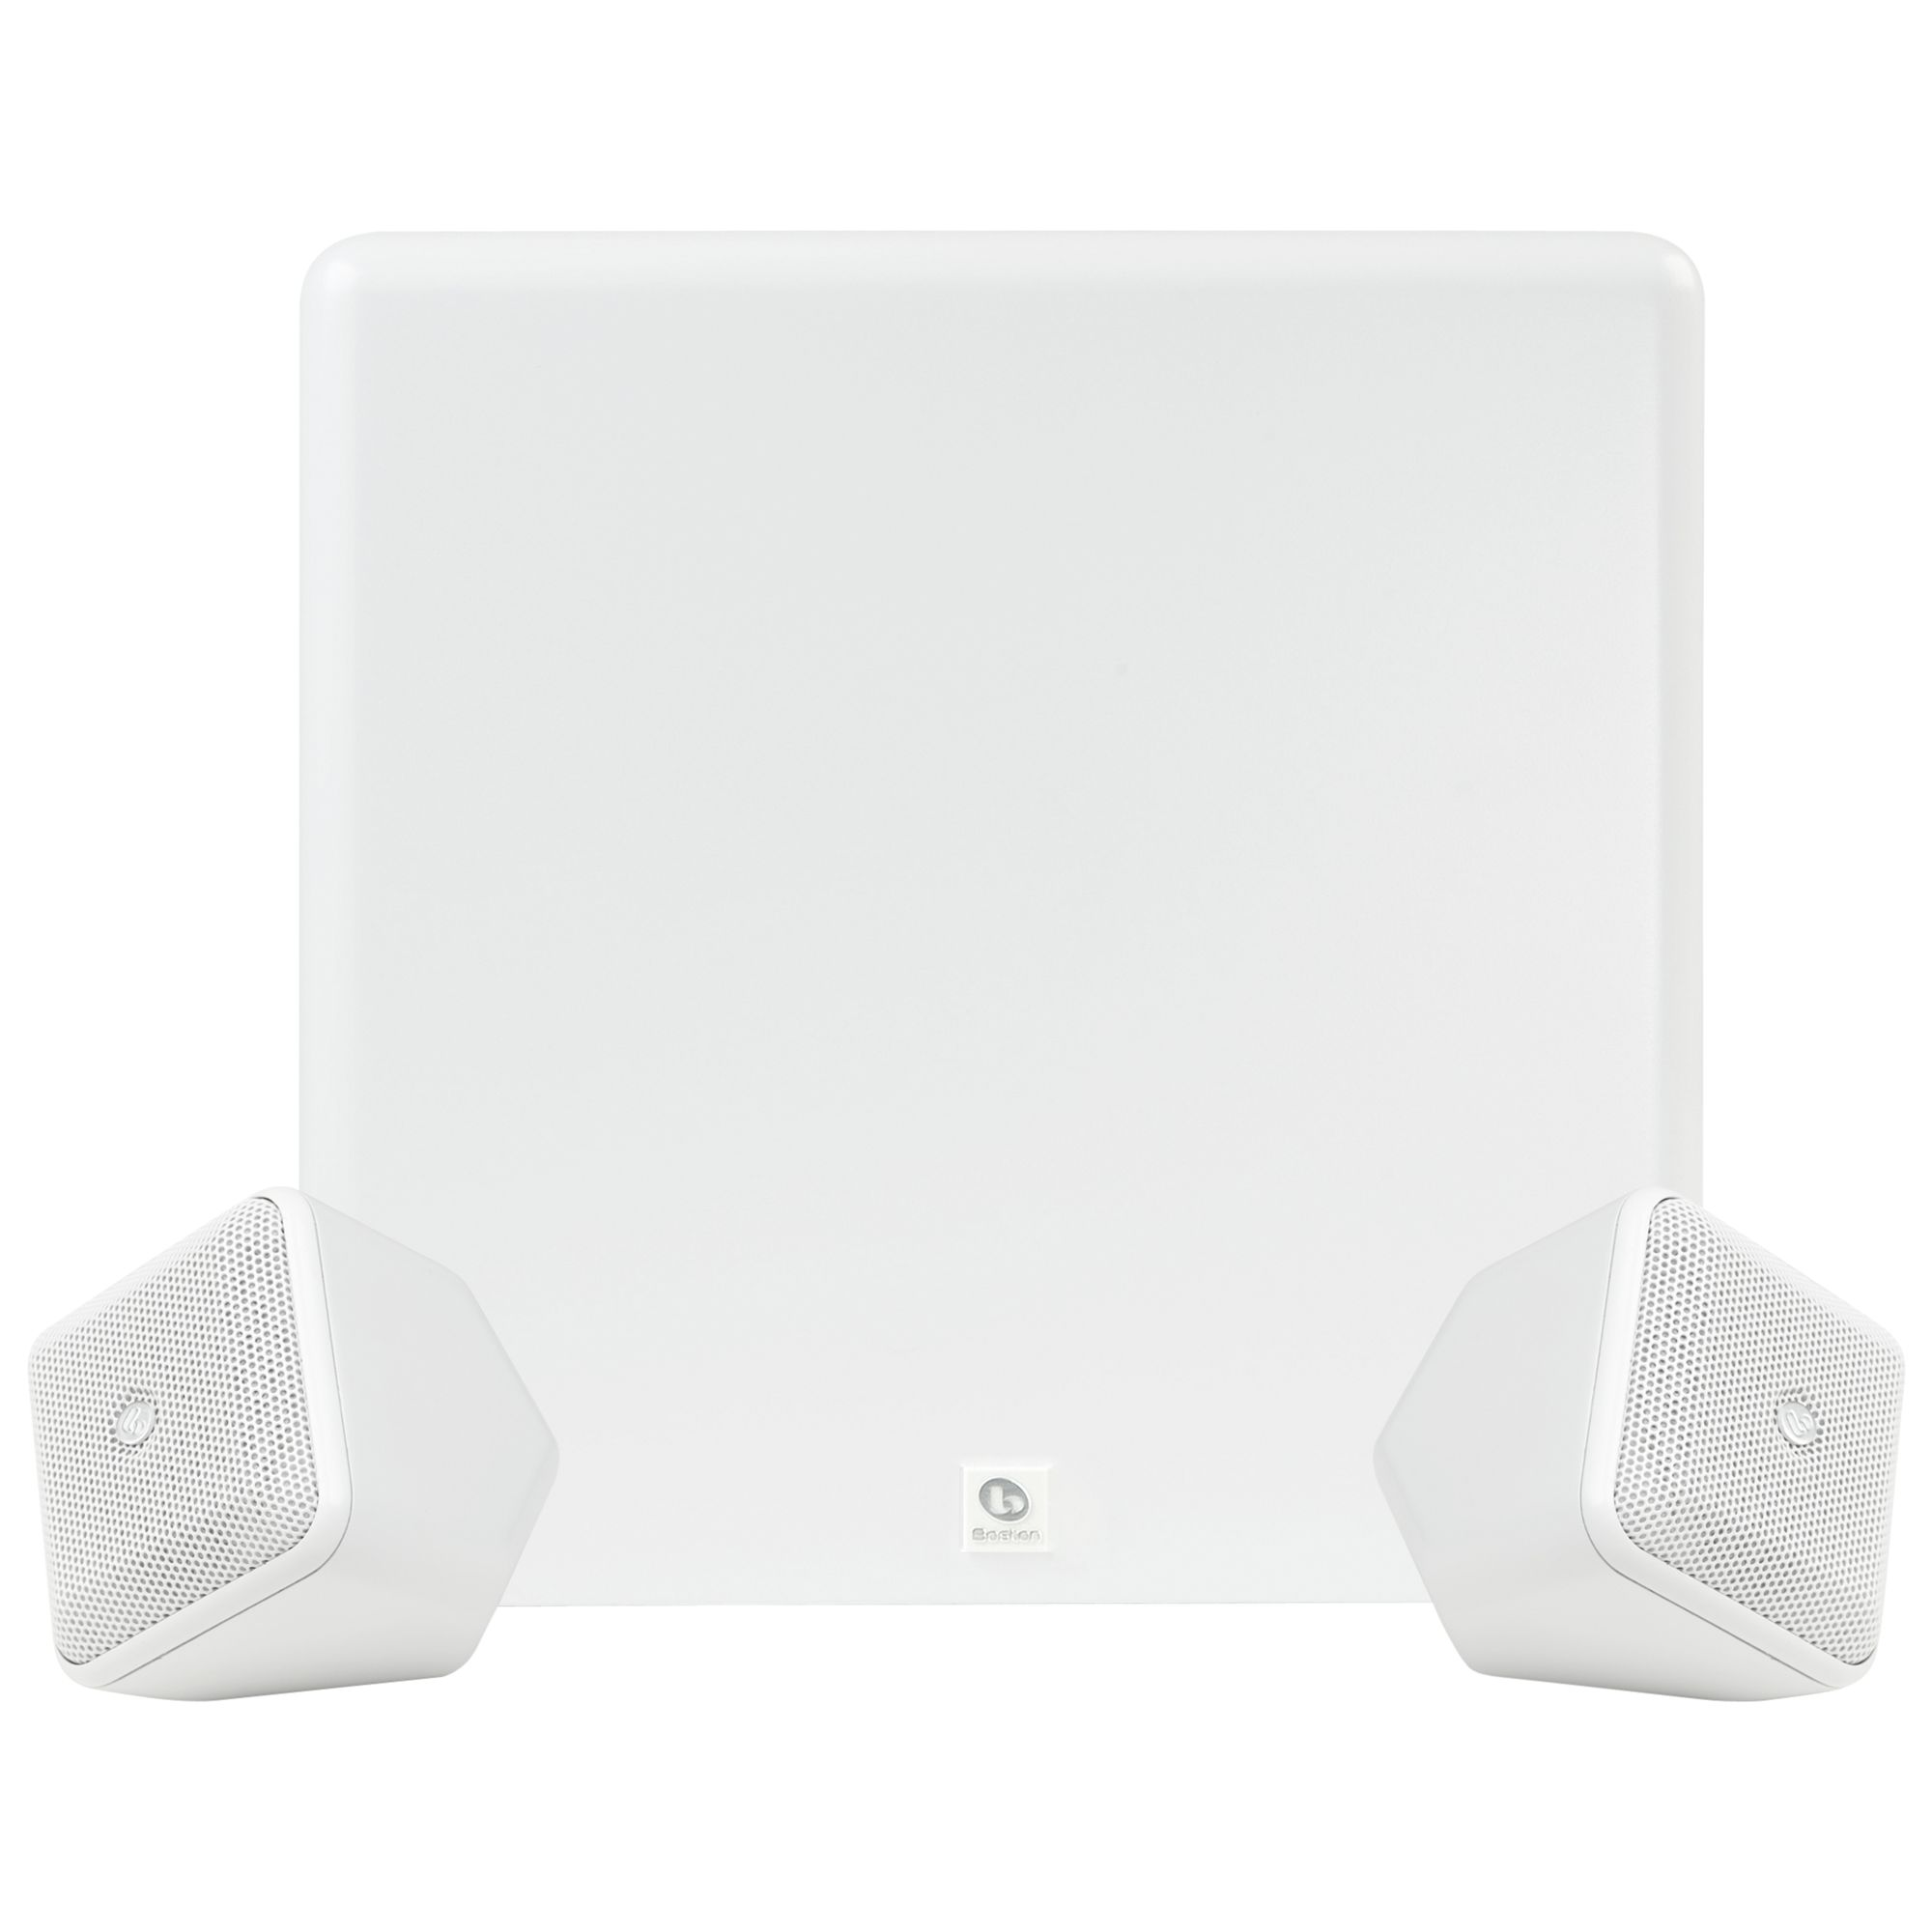 Boston Acoustics SoundWare XS 2.1 Stereo Speaker System, White